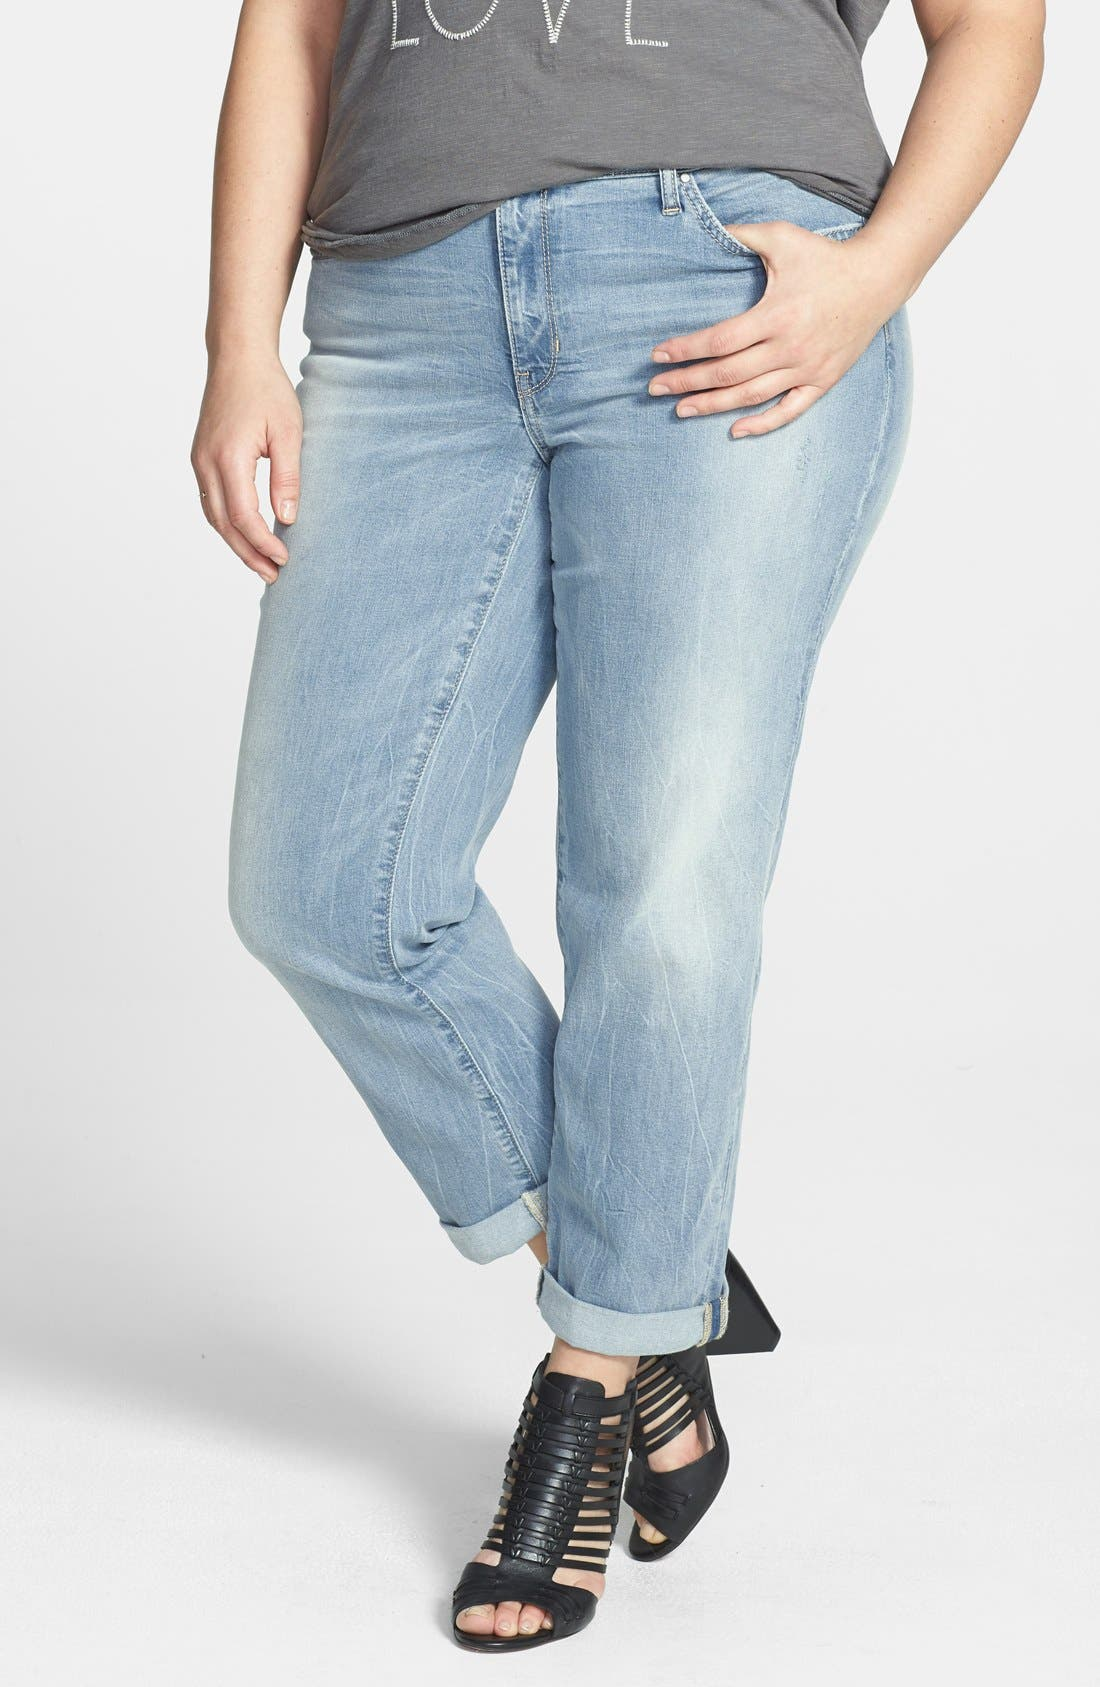 Alternate Image 1 Selected - DKNY 'Bleecker' Boyfriend Jeans (Icy Brook) (Plus Size)